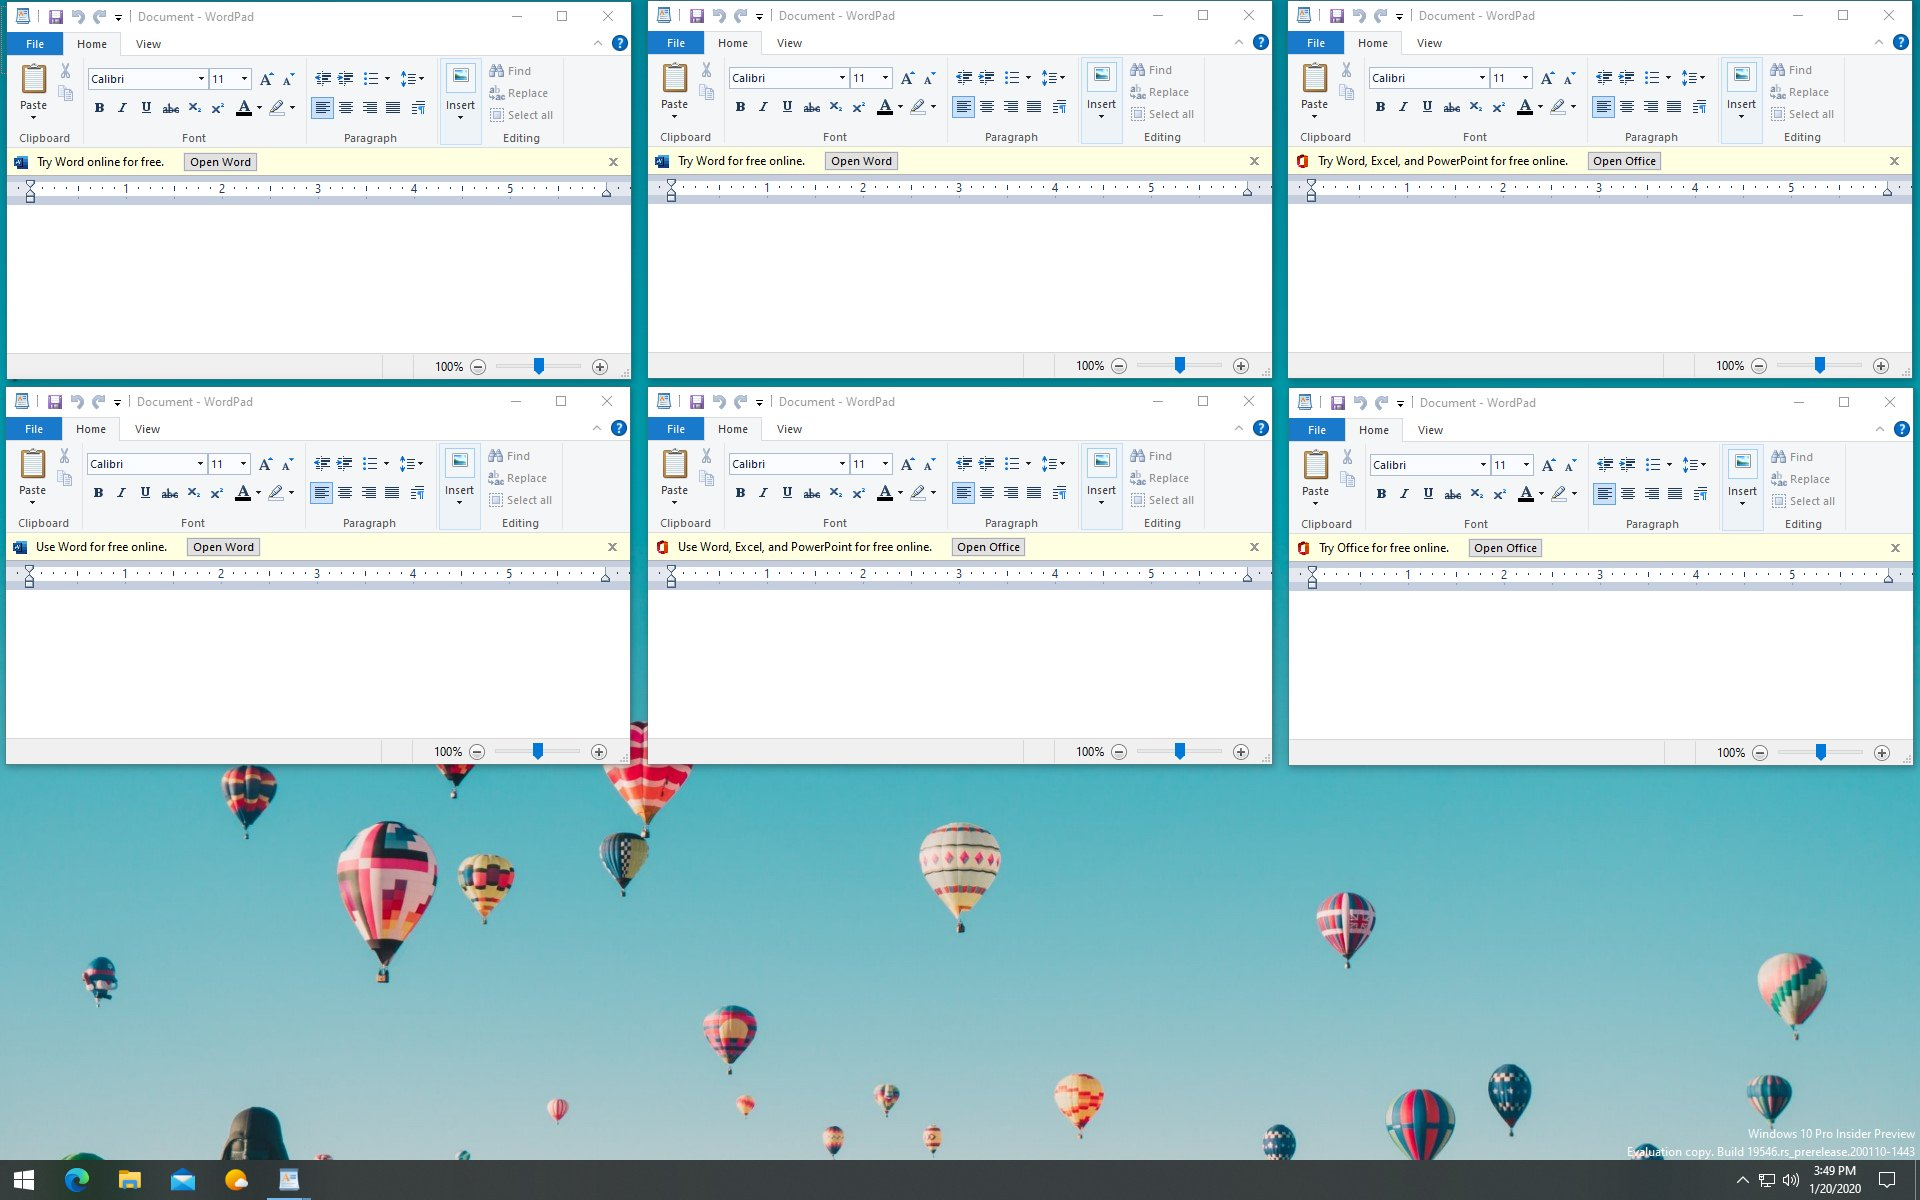 Various experimental layouts for WordPad with in-app ads